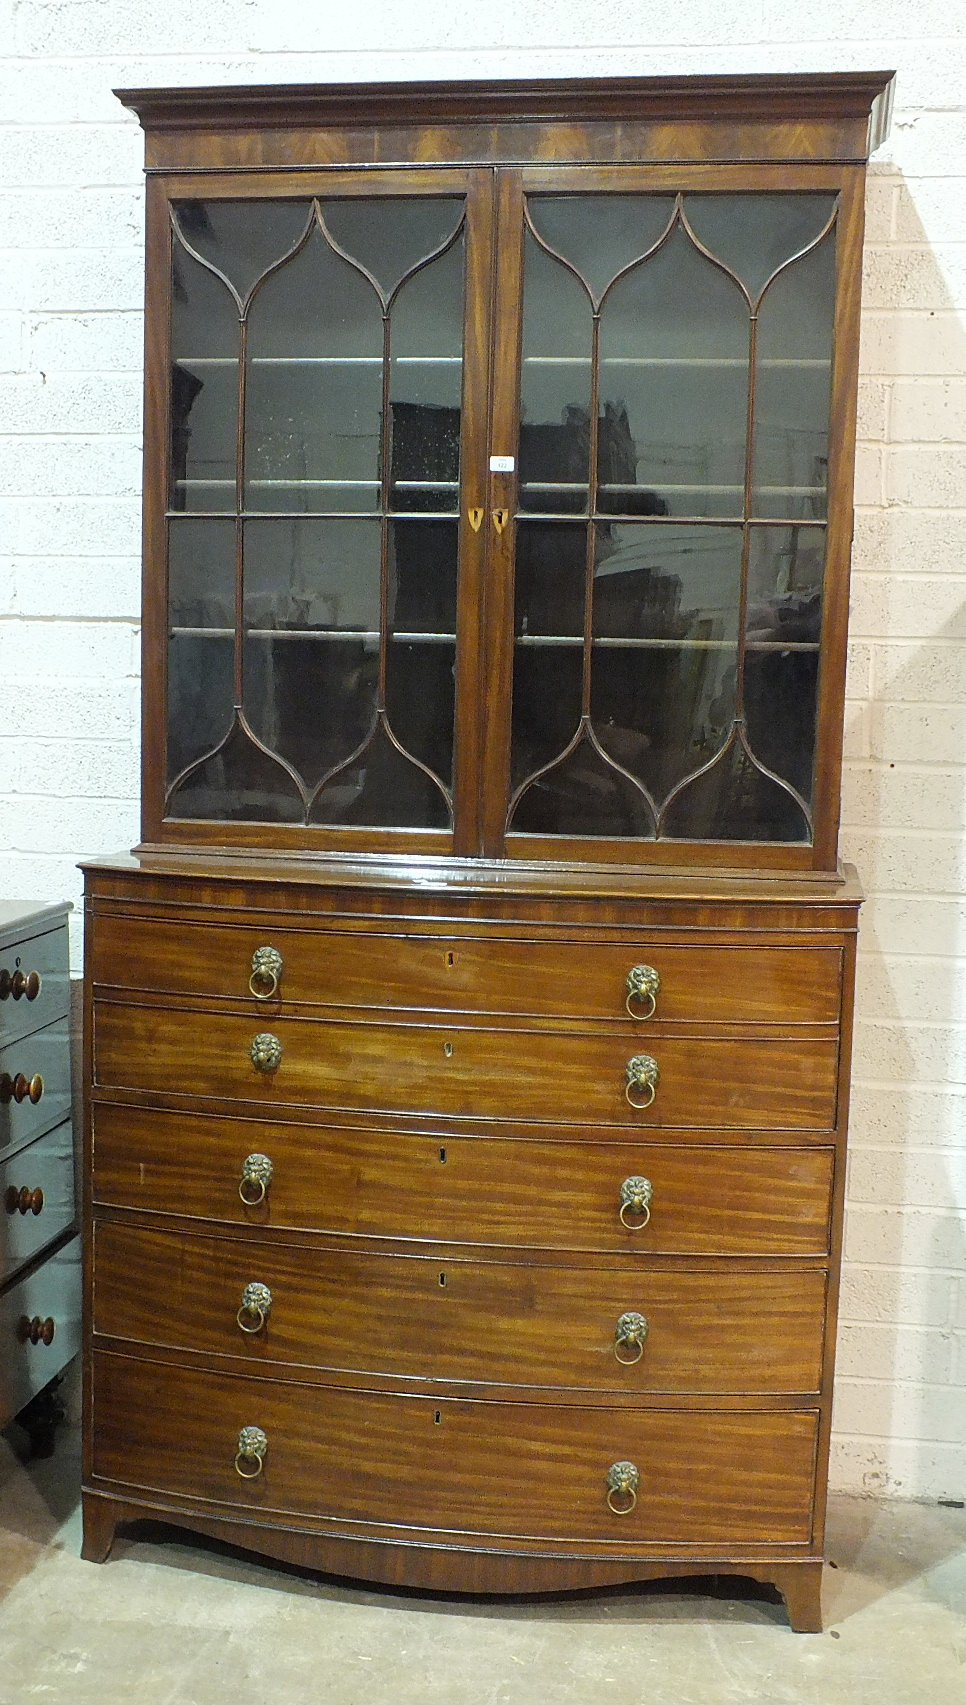 A George III mahogany bow-fronted secretaire bookcase, the moulded cornice above a pair of gothic